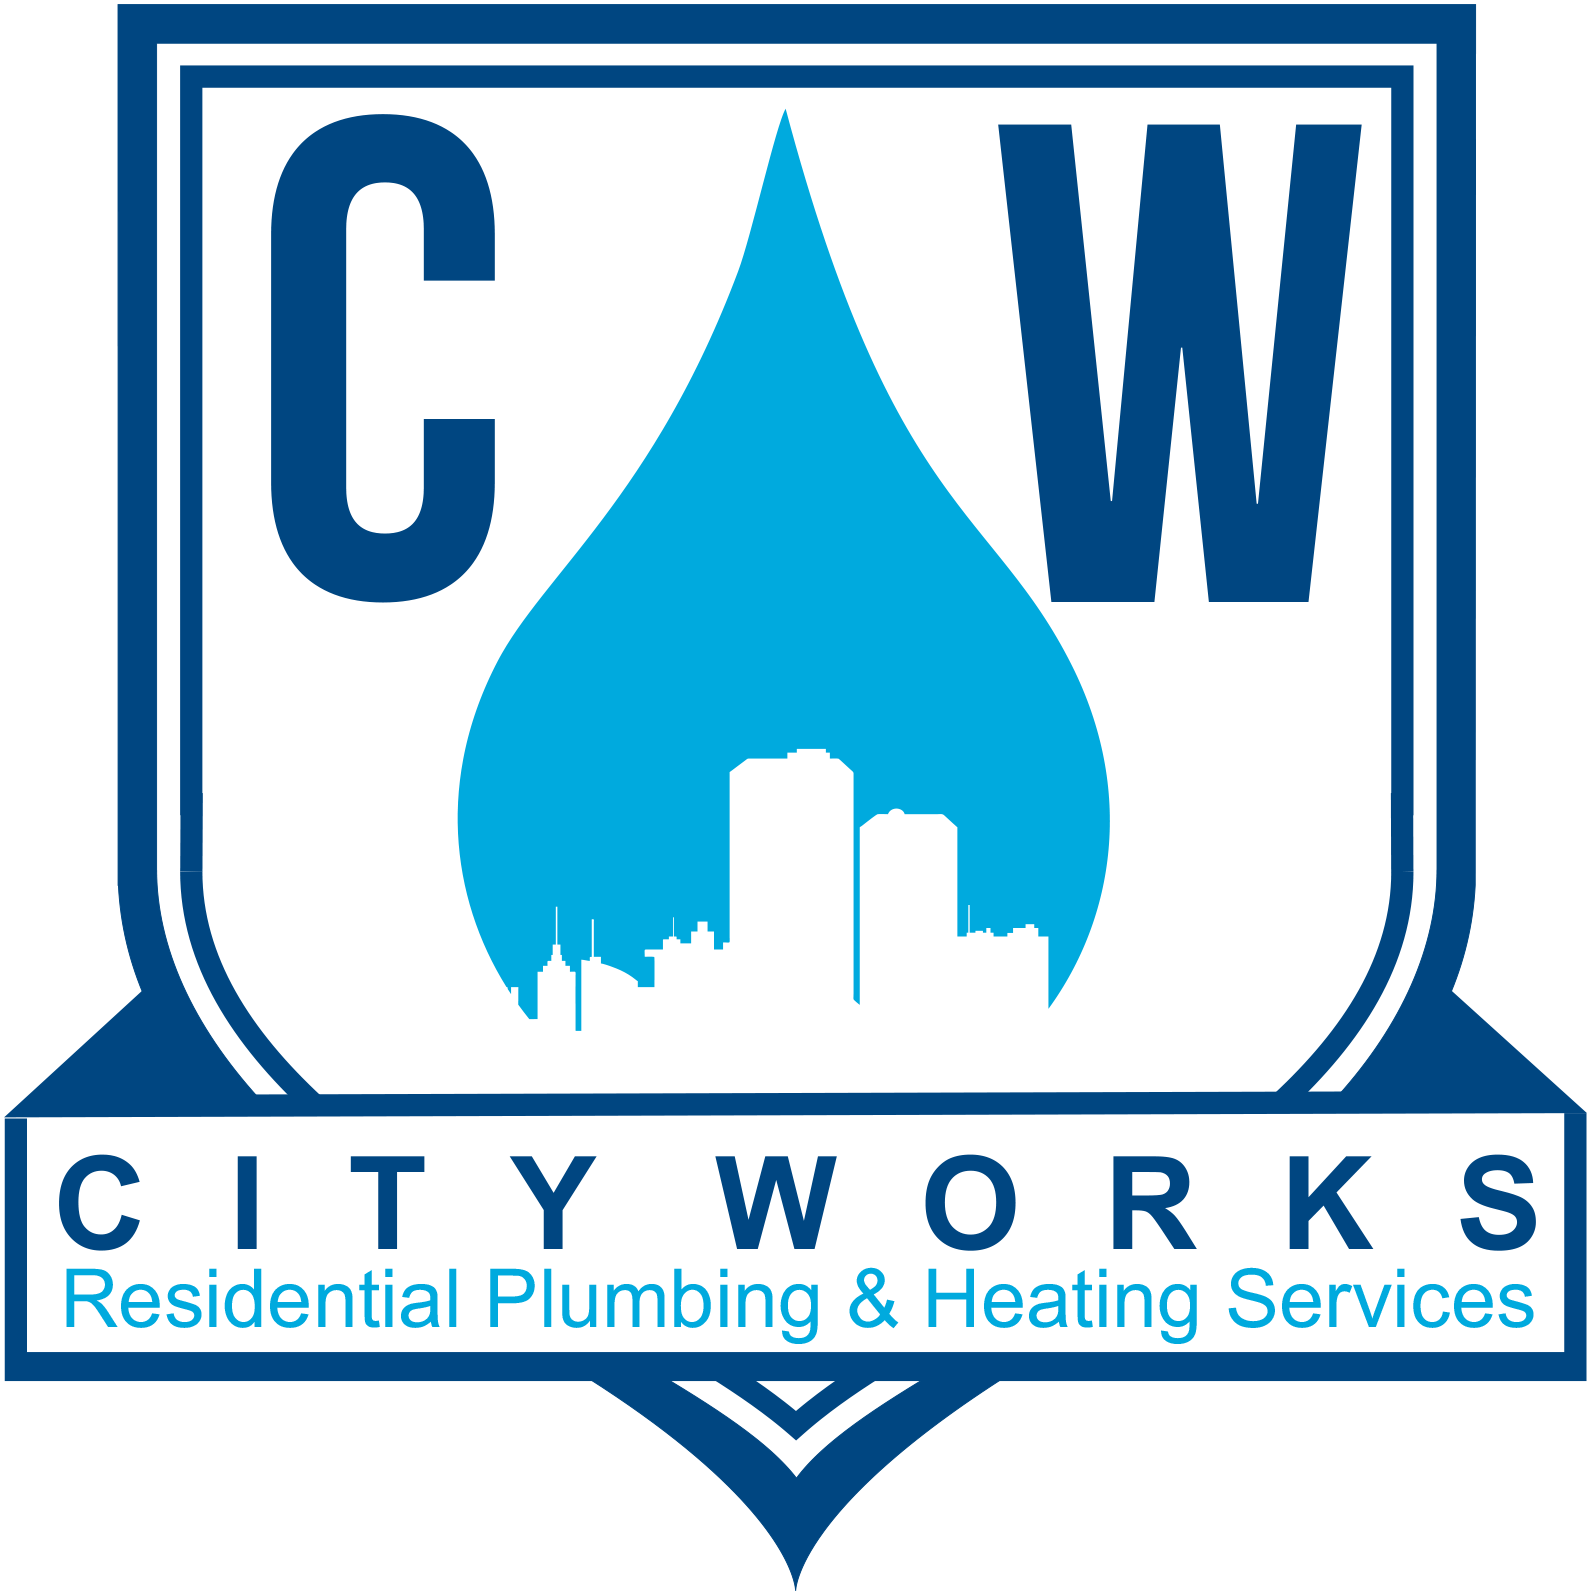 city works logo